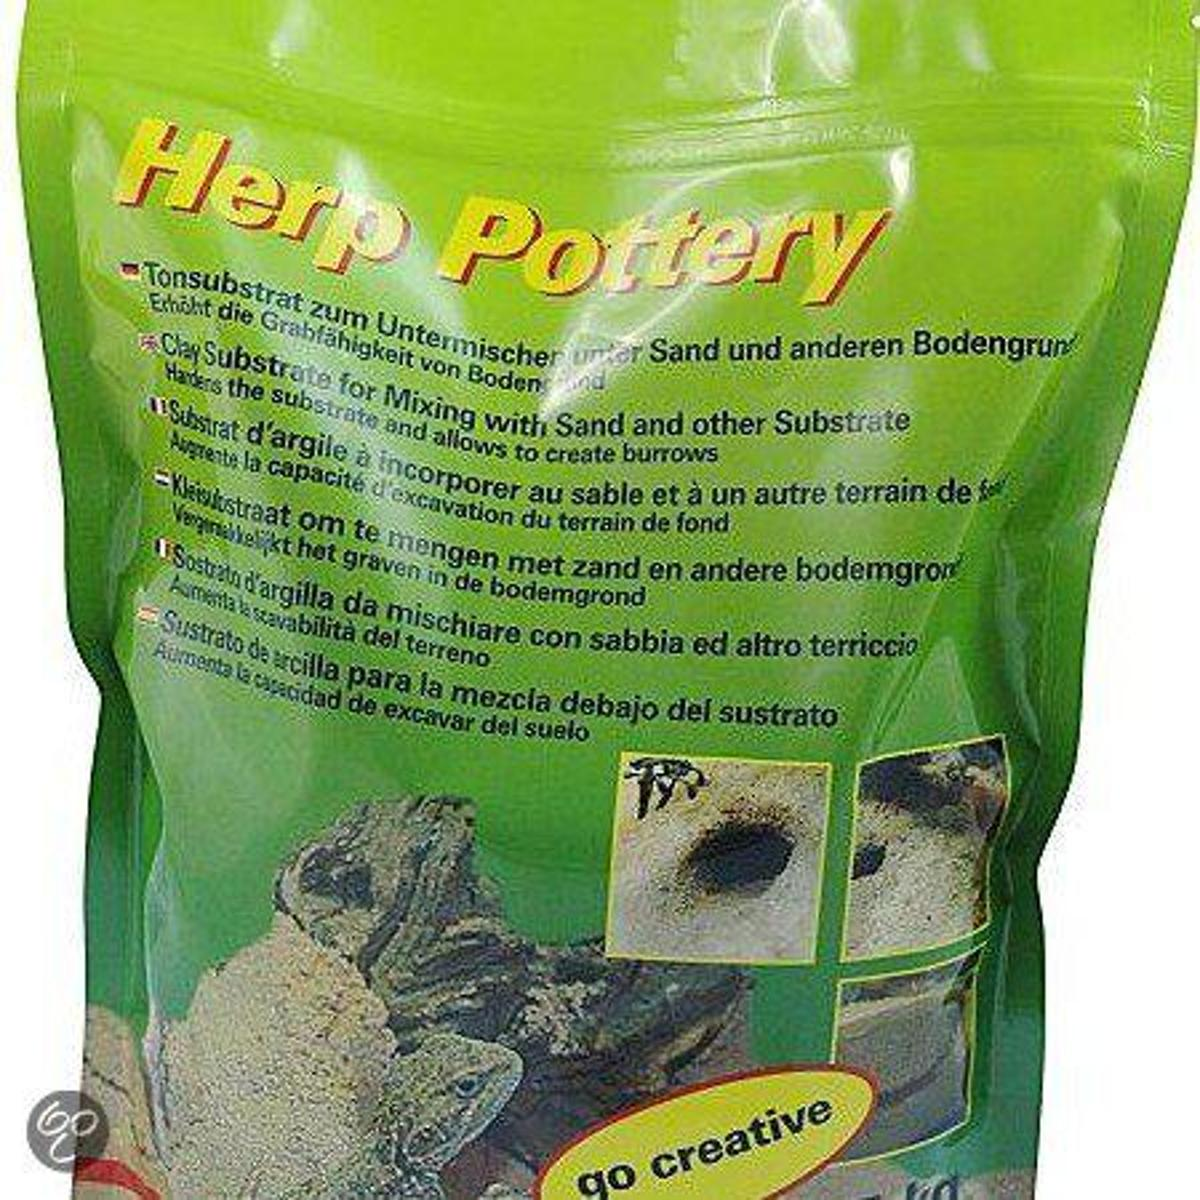 Lucky Reptile Herp Pottery - 2.5 kg